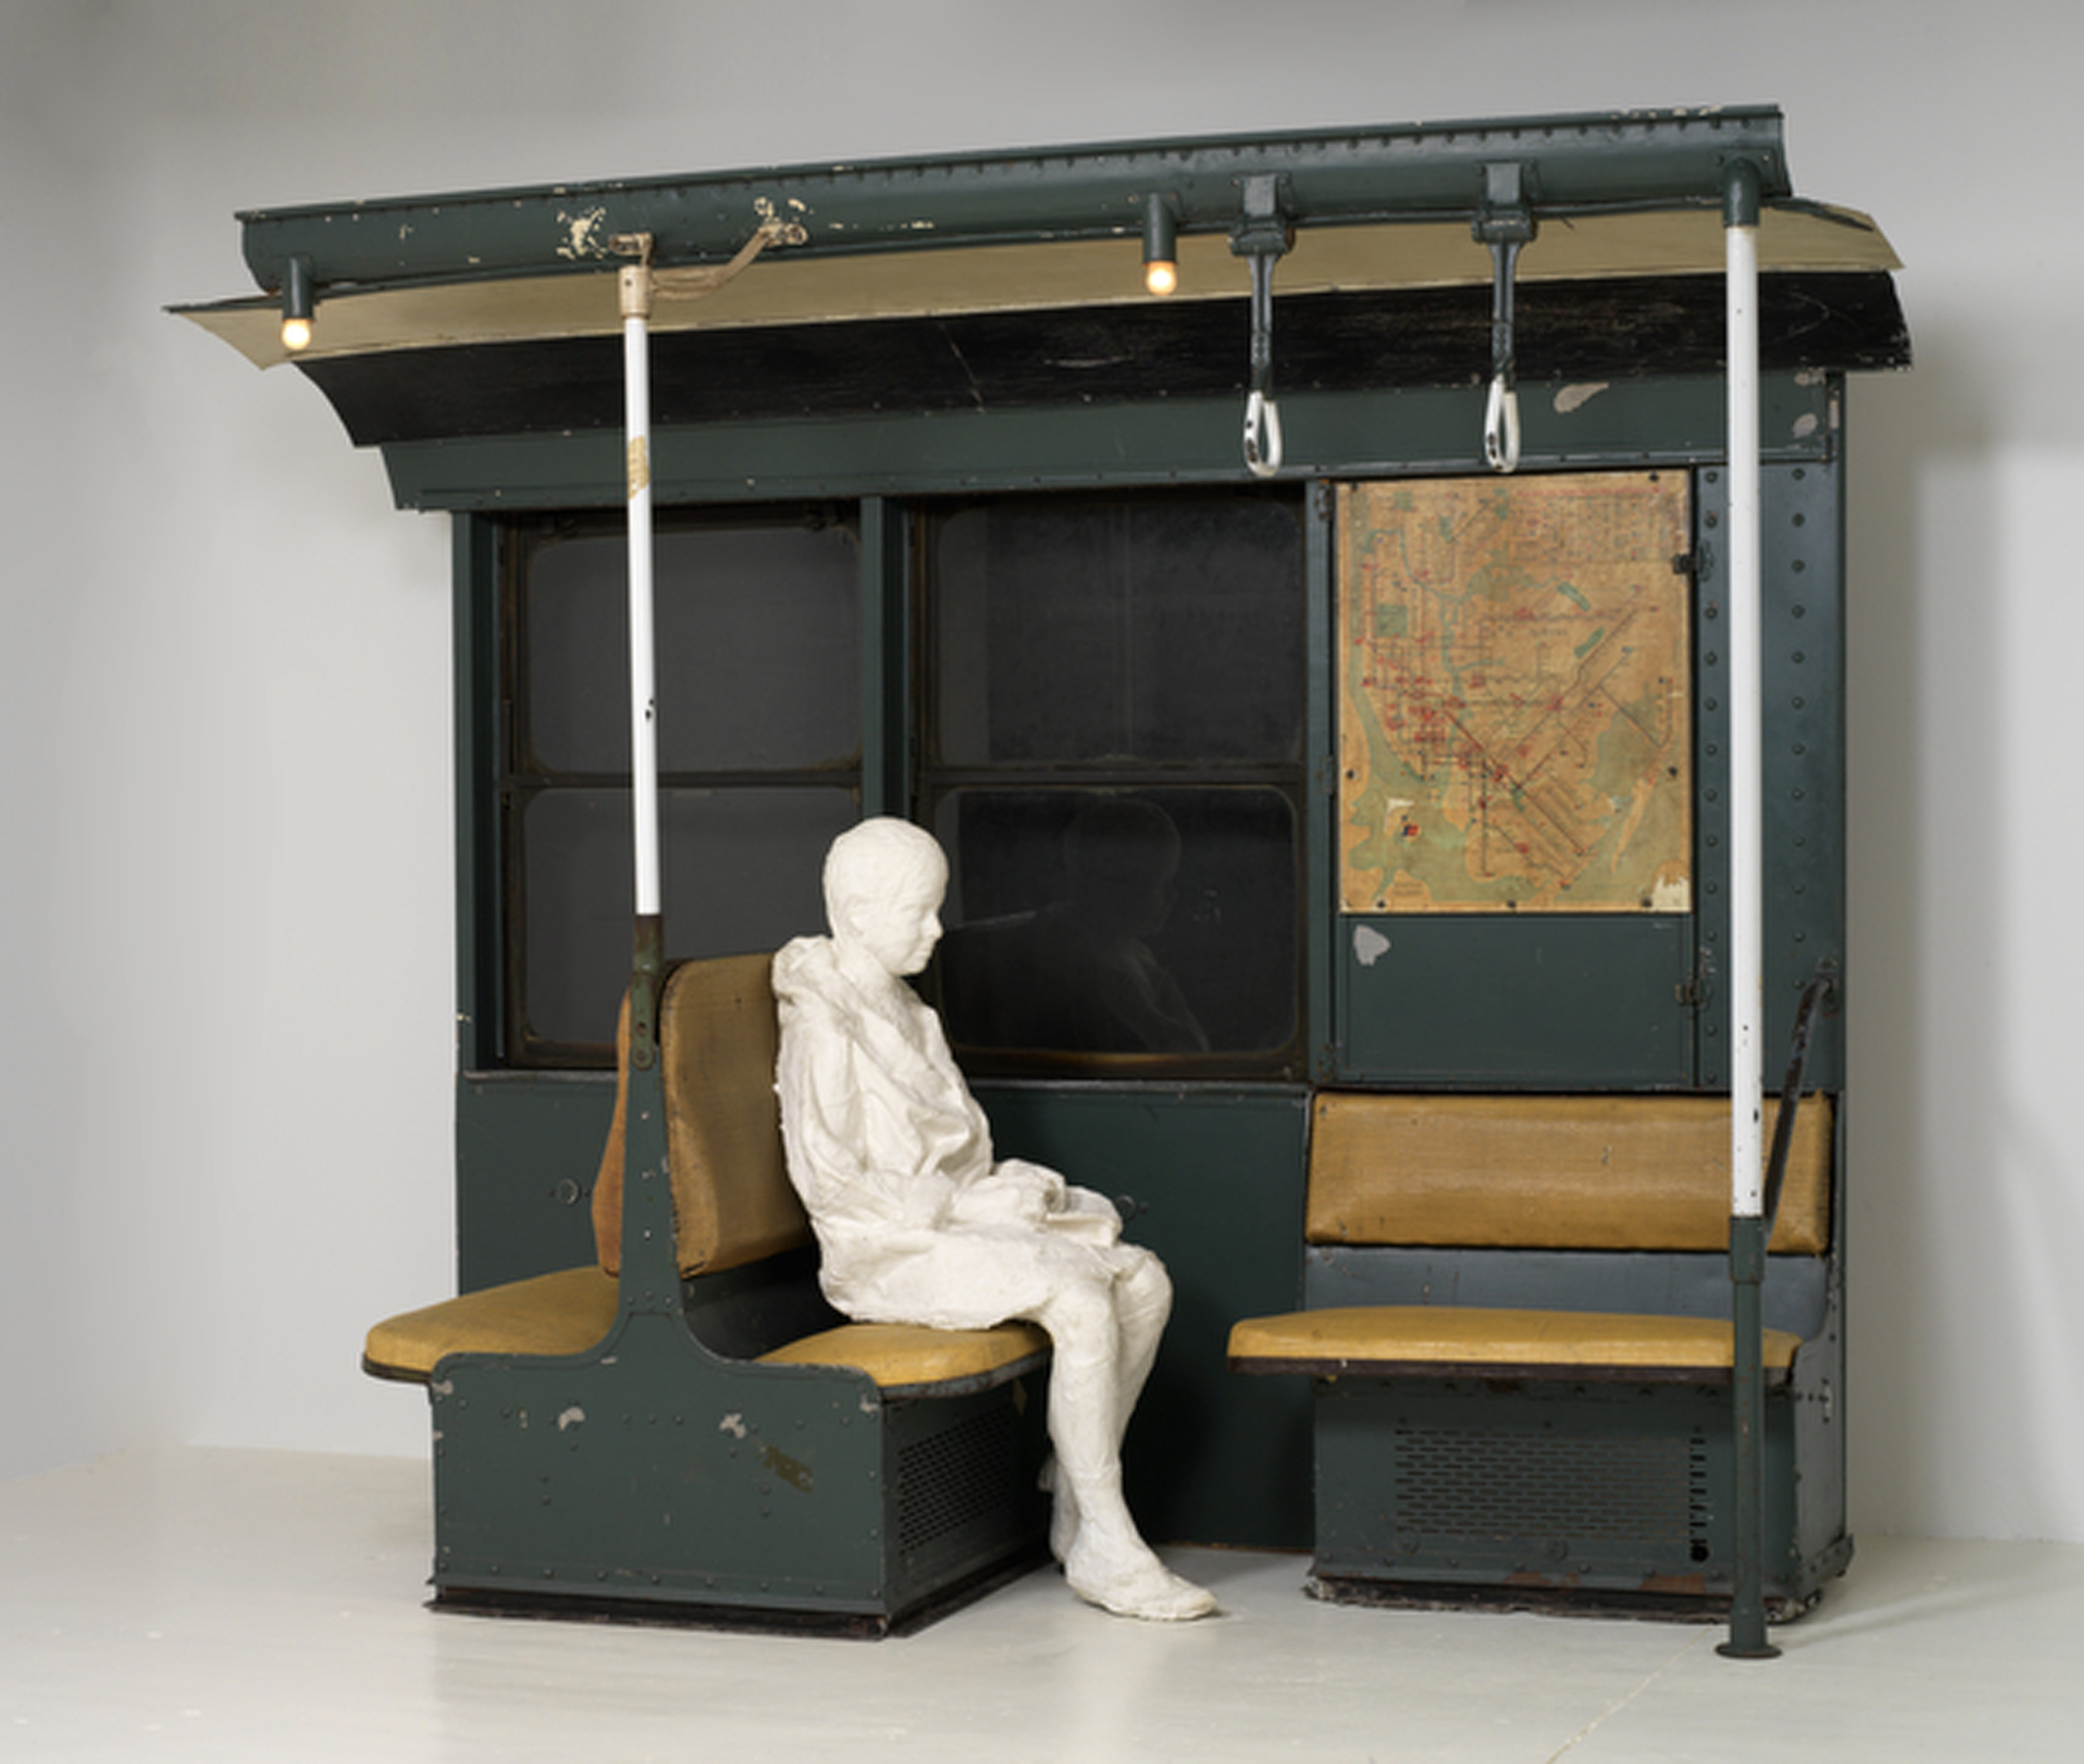 George Segal, Subway, 1966, Margulies Collection at the Warehouse